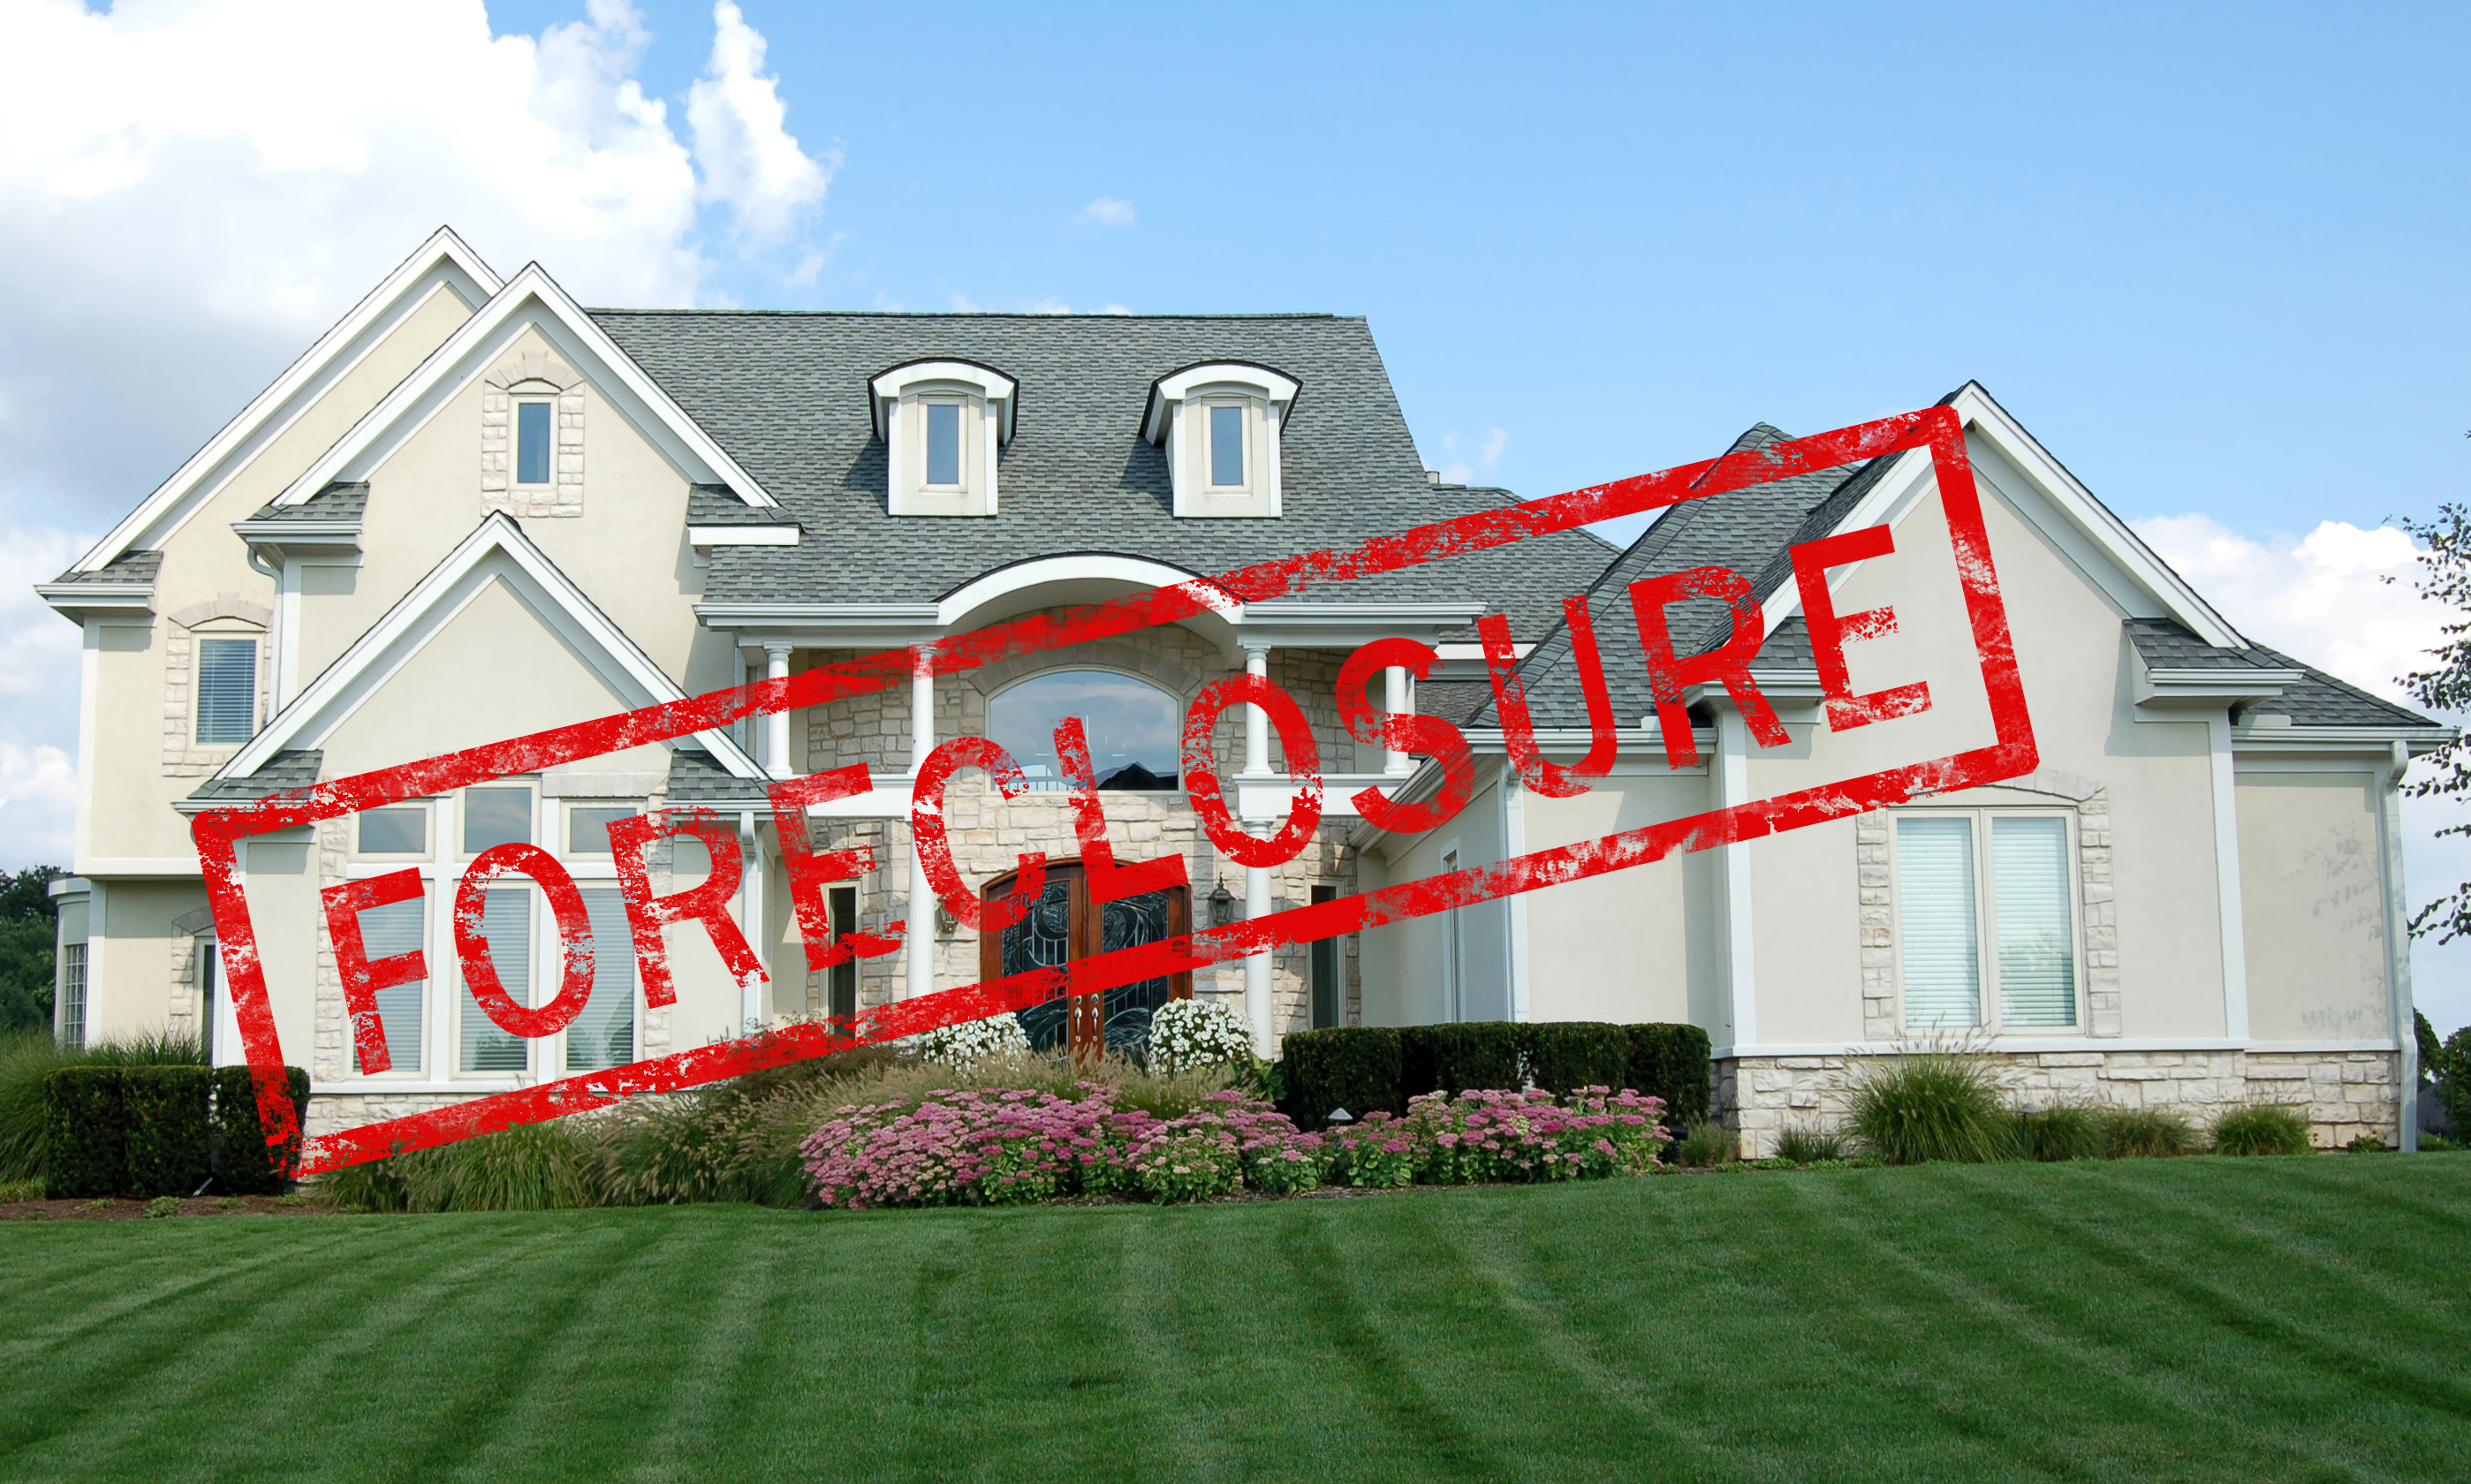 Call Appraisal Advantage, Inc to discuss appraisals on Orange foreclosures